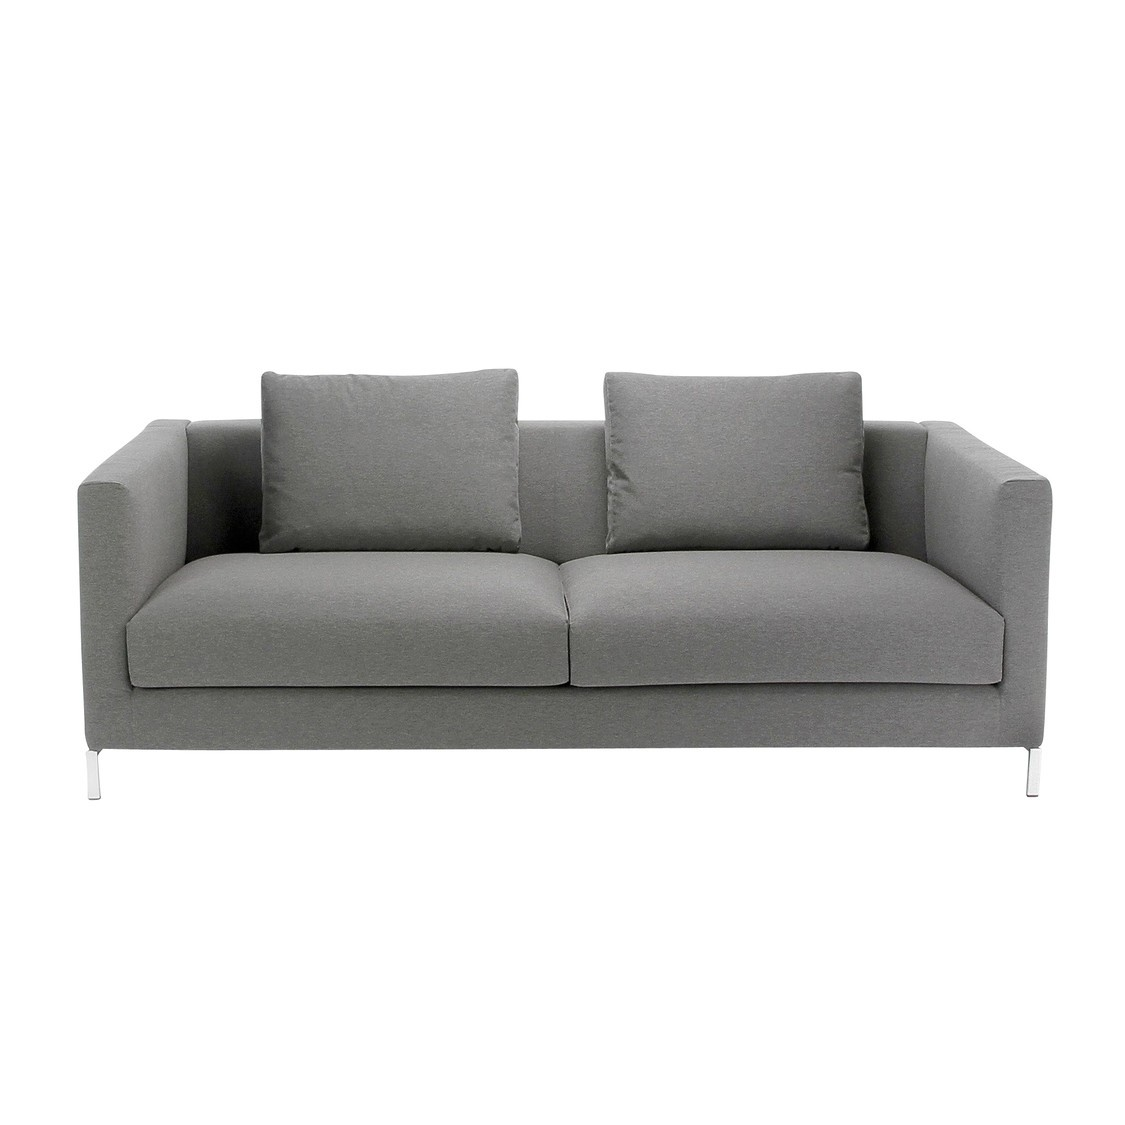 Sofas 3 Sitzer Adwood Cube Sofa 3 Sitzer Couch Ambientedirect